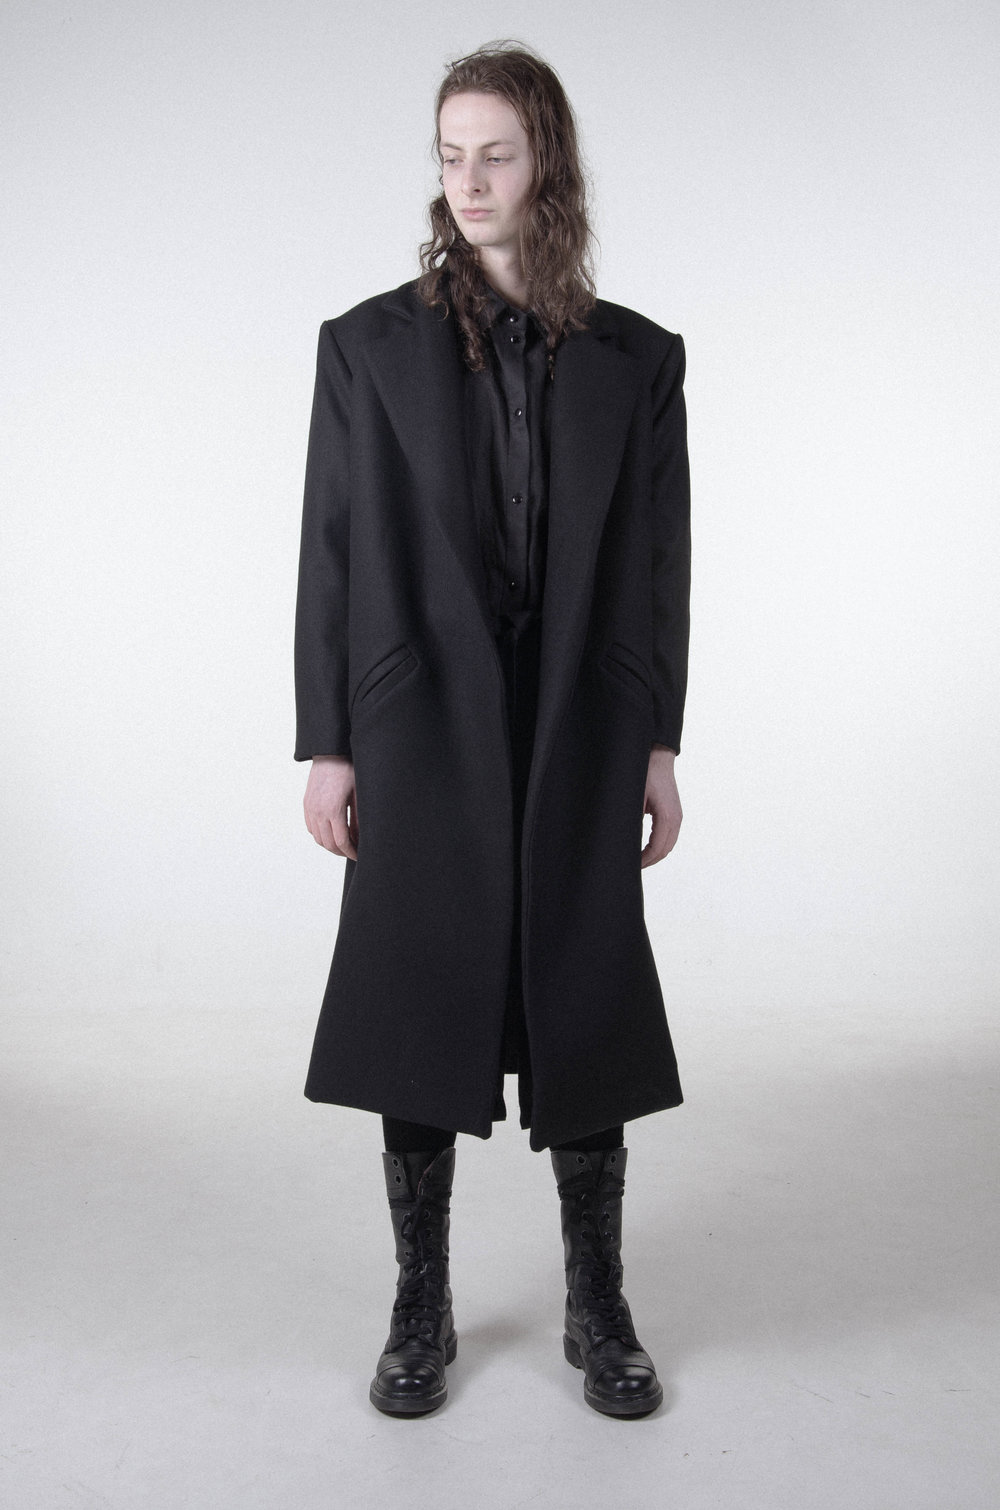 britt-pooley-agoraphobia-collective-double-breasted-bowie-coat